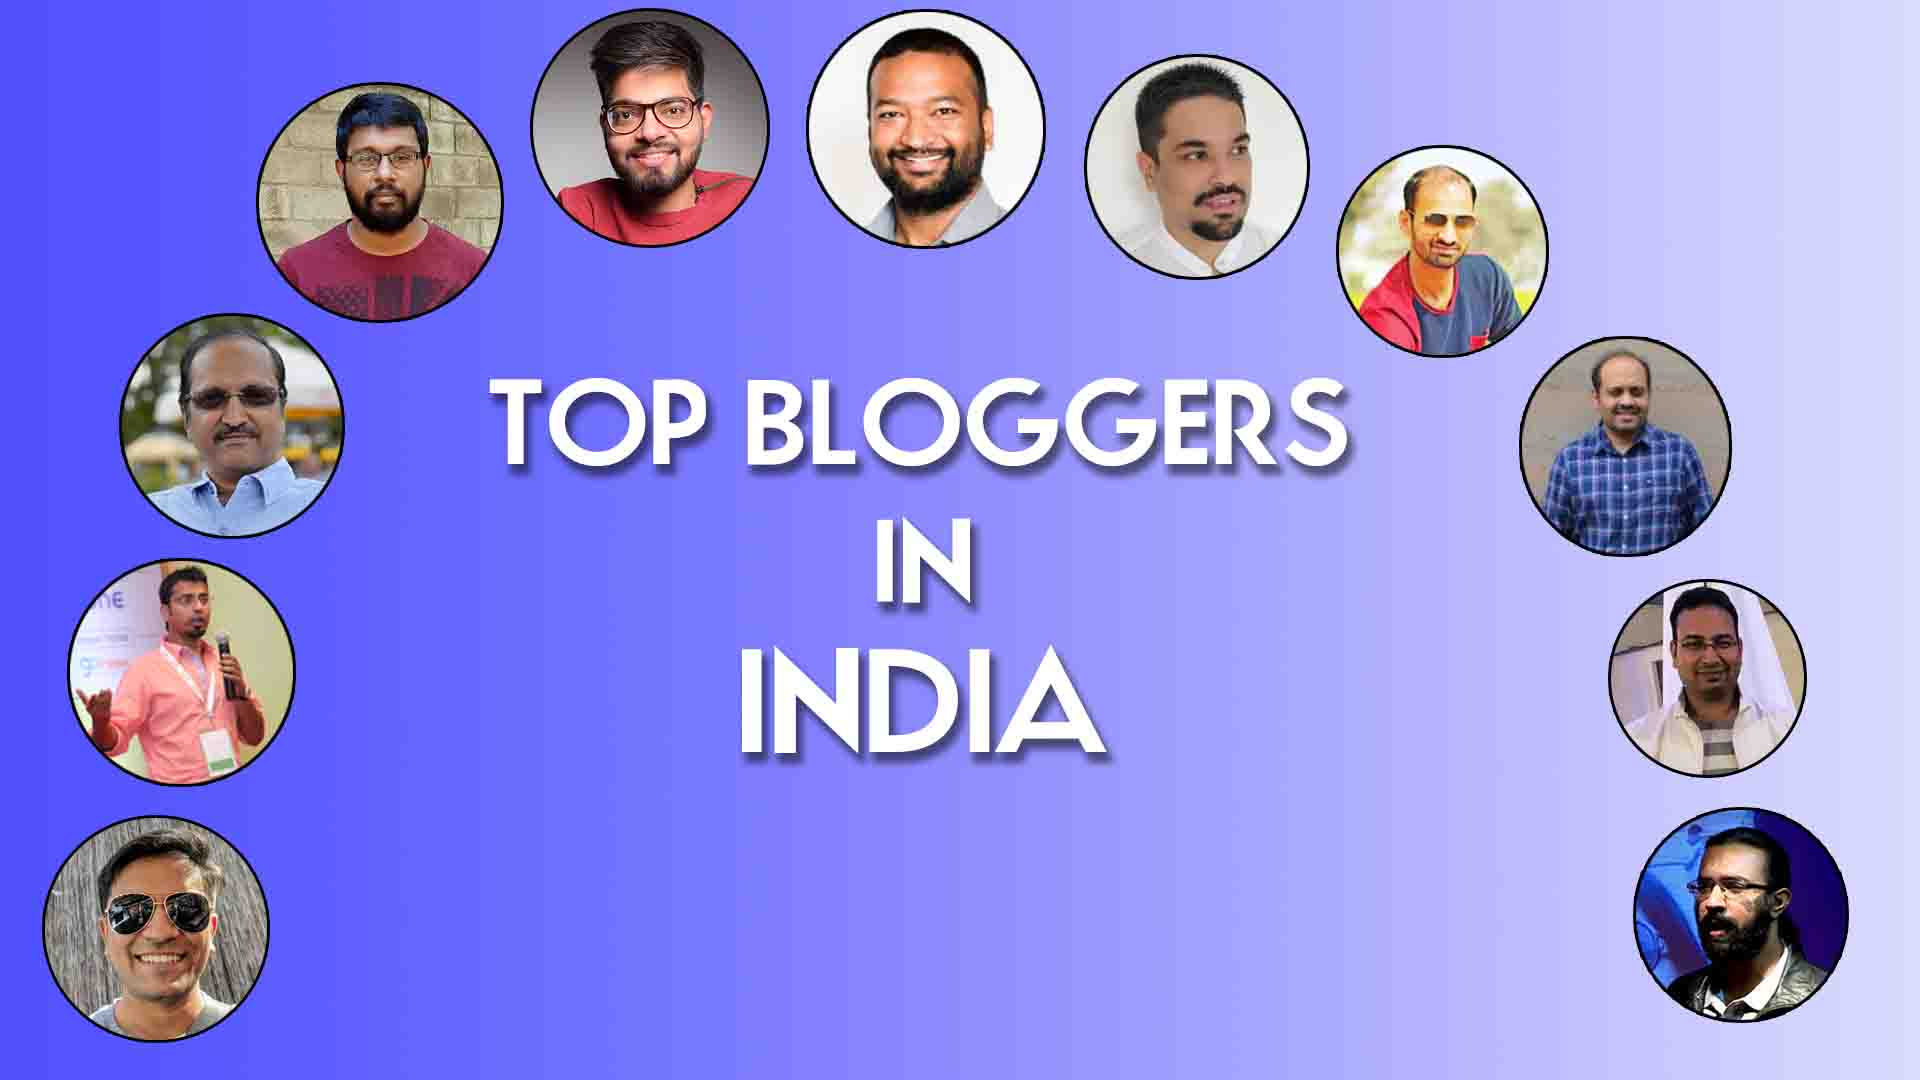 Top bloggers in india and their earnings